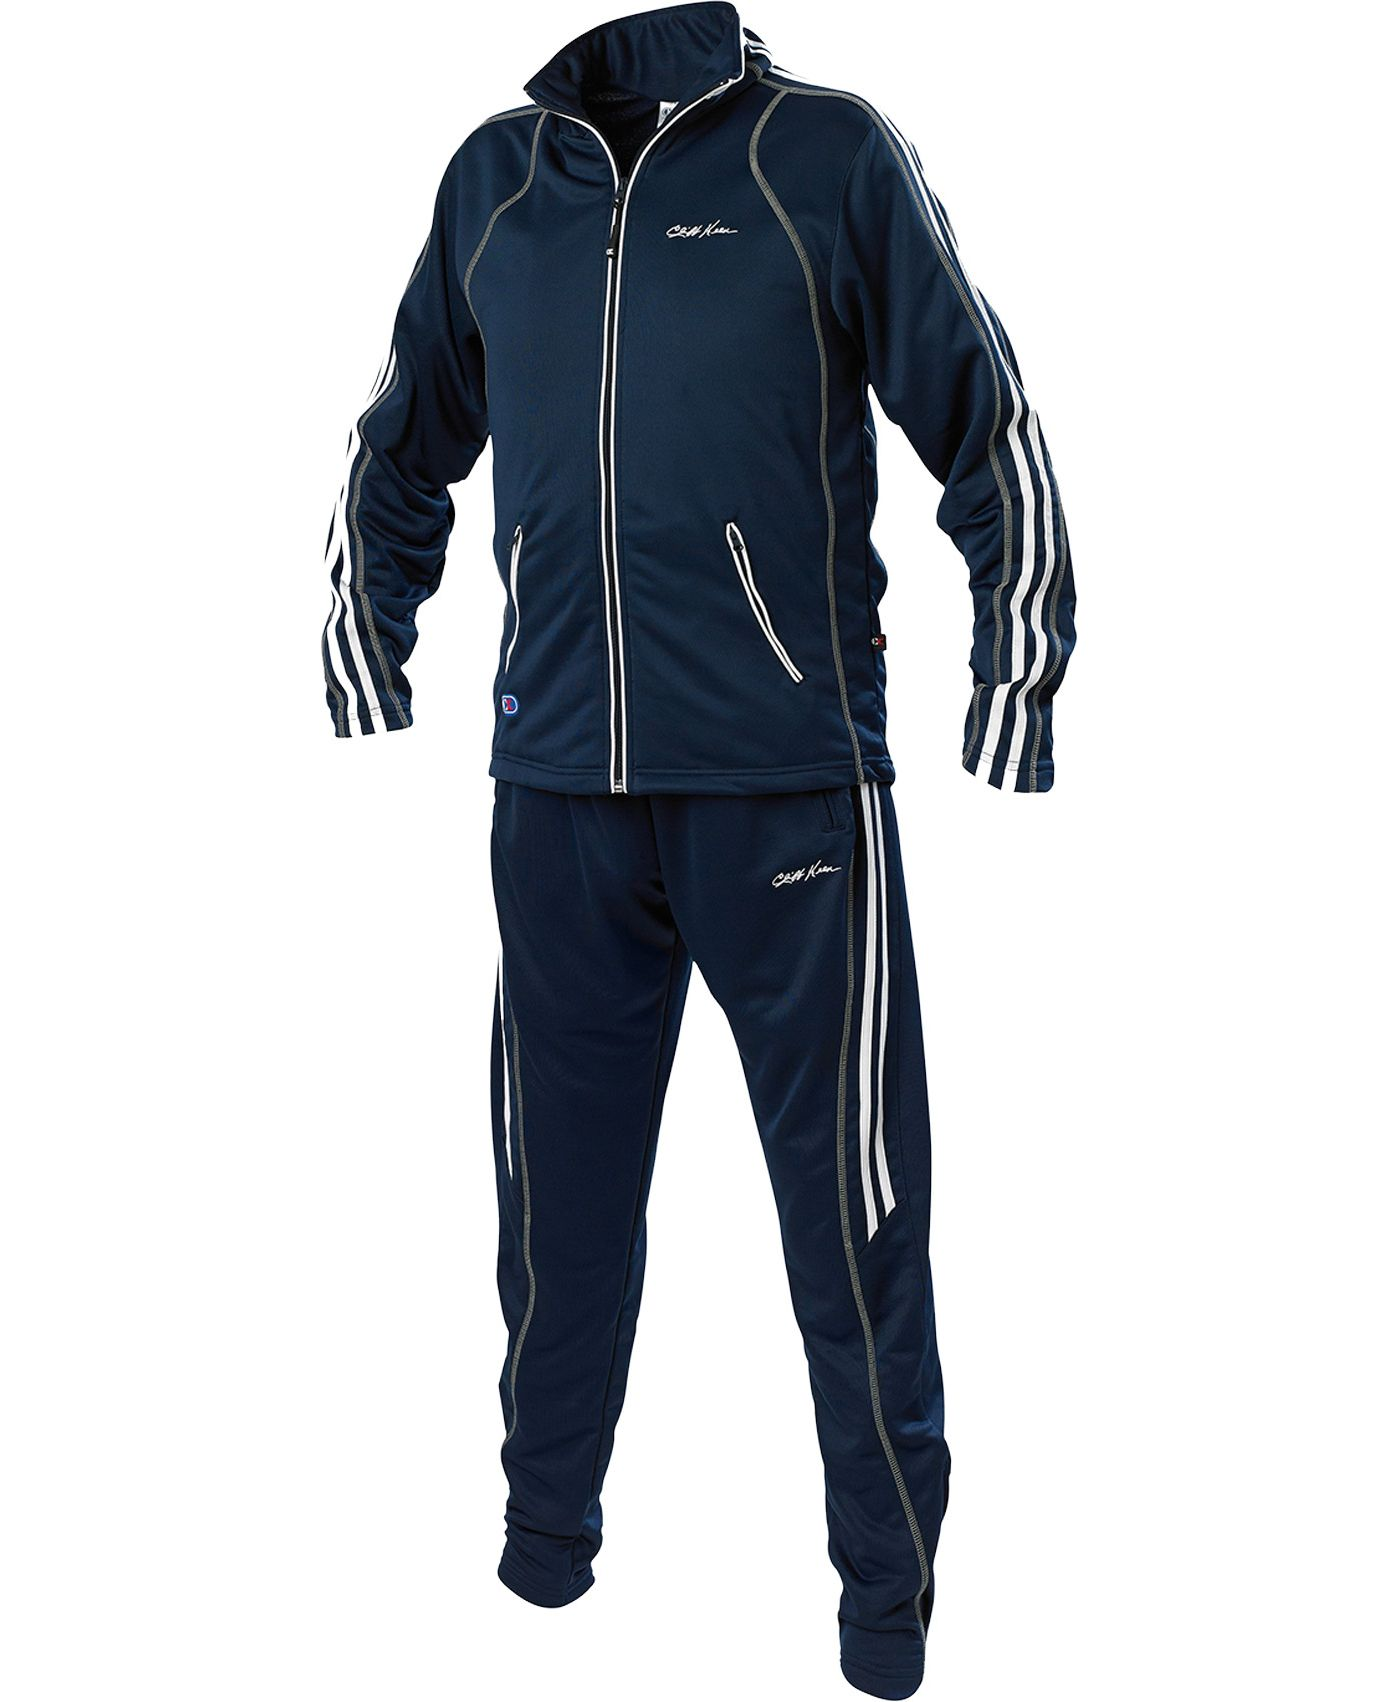 Cliff Keen Freestyle Wrestling Warm-Up Suit - XL